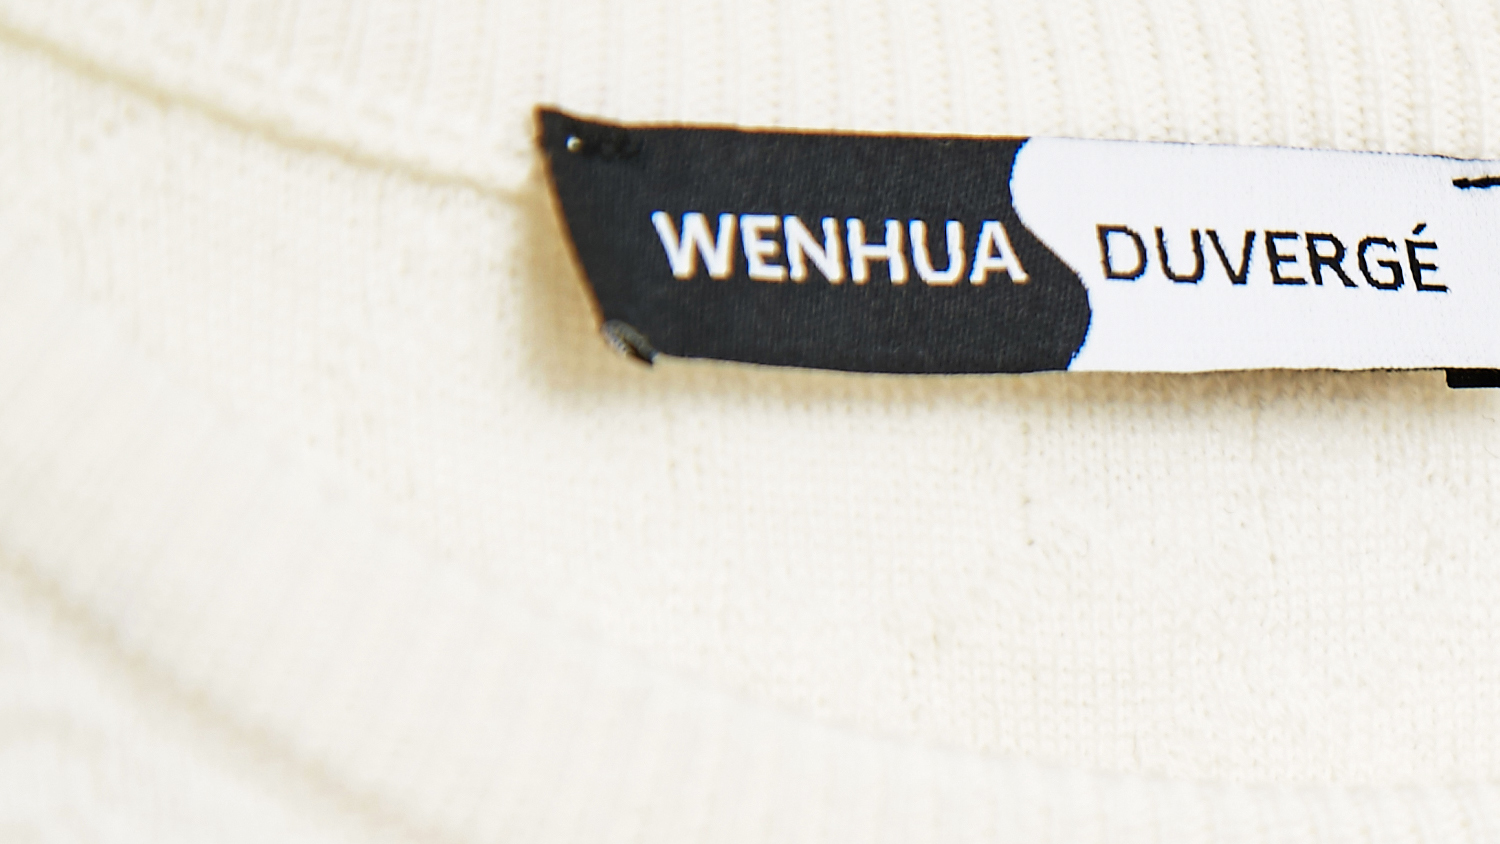 WENHUA DUVERGÉ, Slow Fashion brand, spreads a new eco-responsible lifestyle